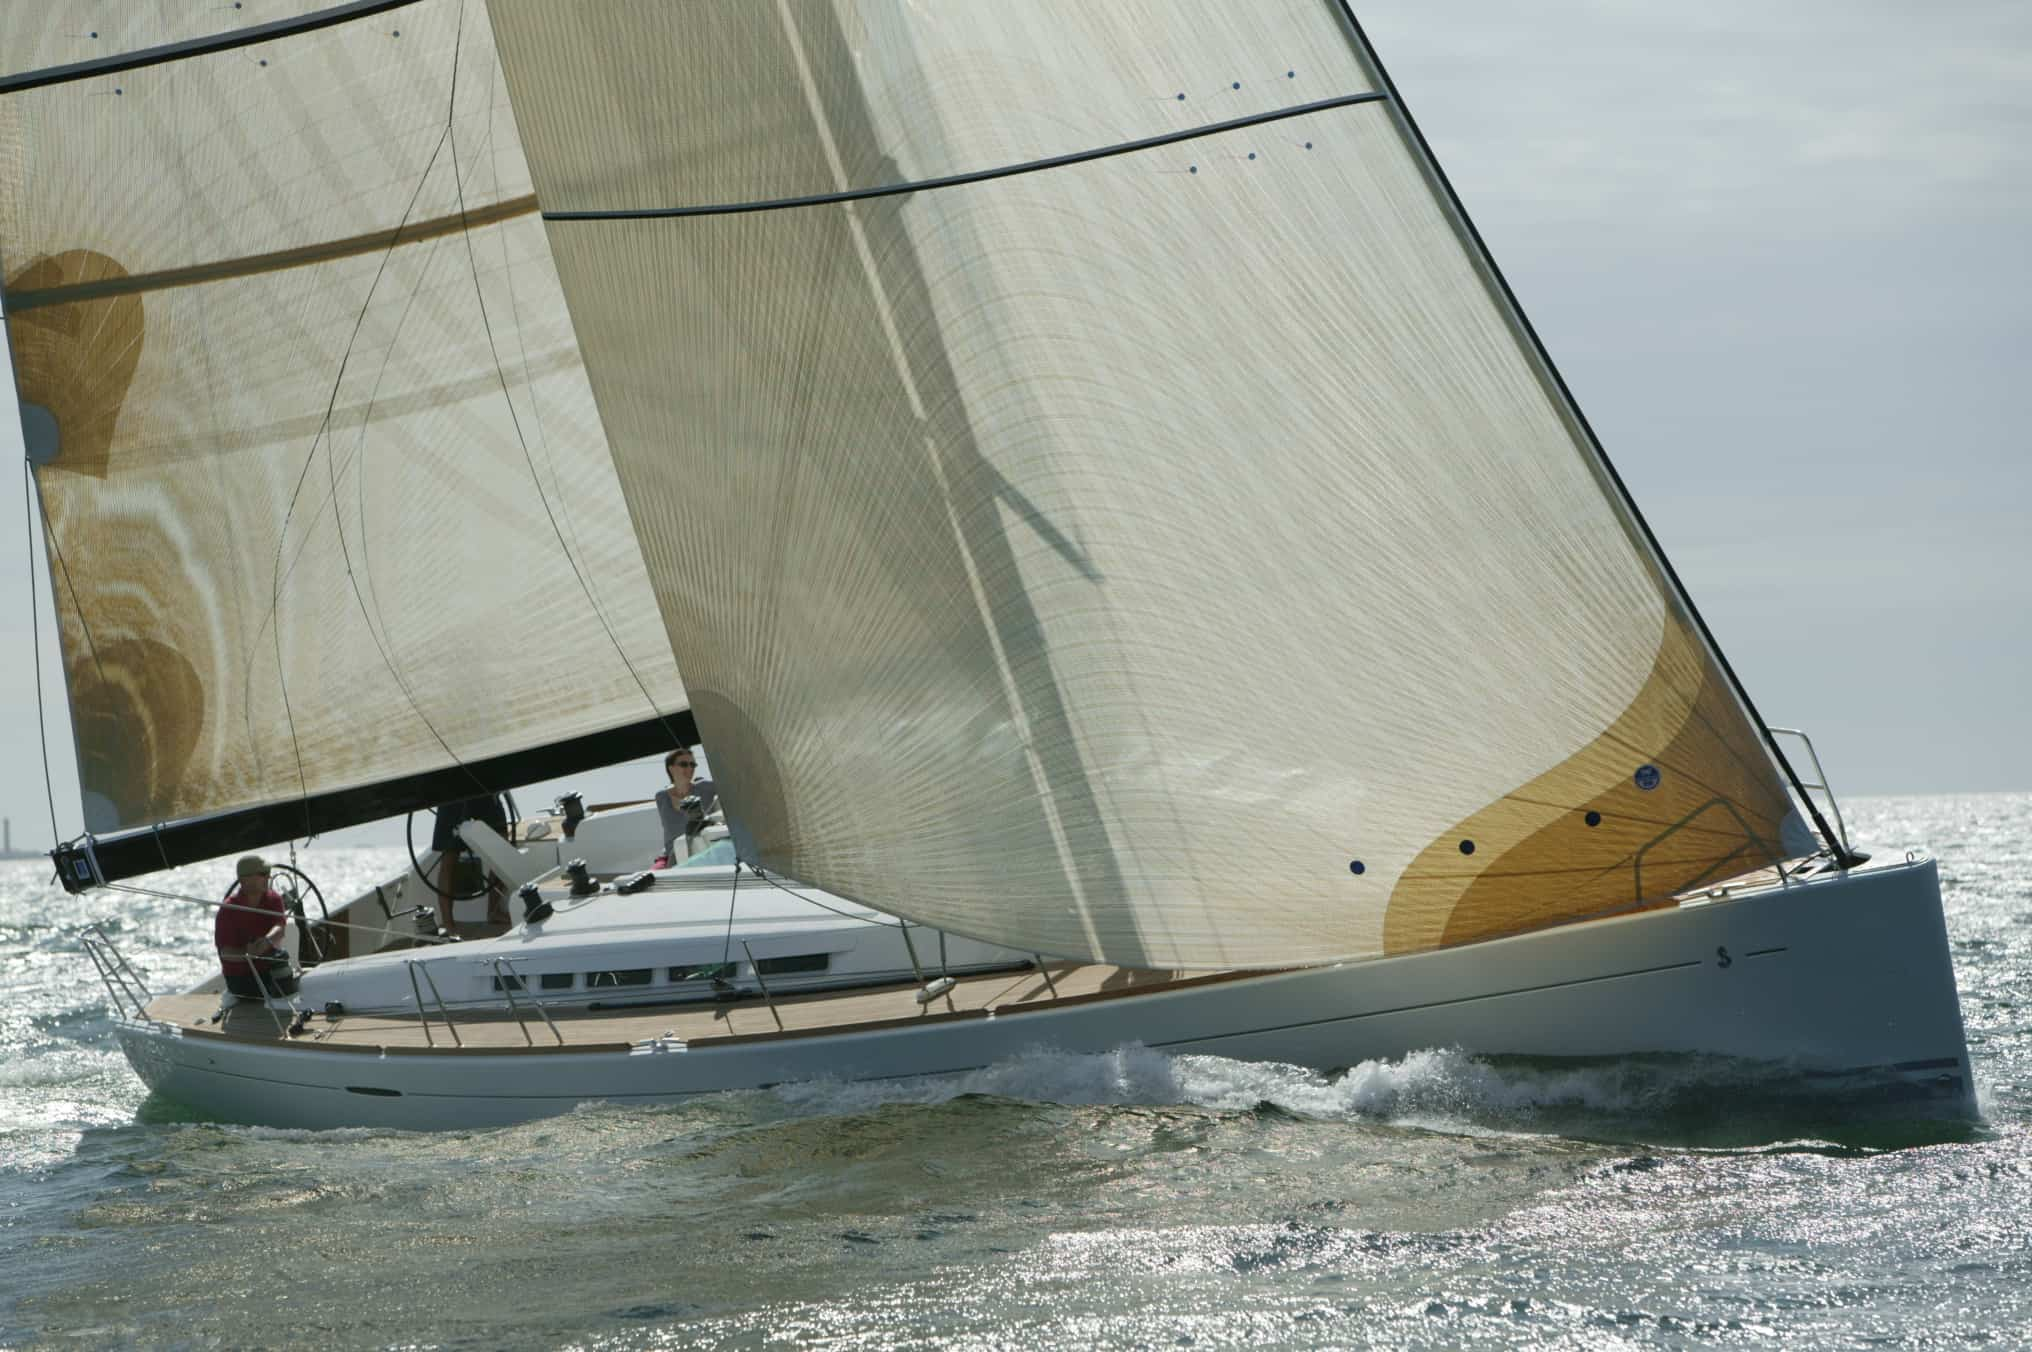 yacht skipper, yacht skippering, yacht delivery, own boat, own boat tuition, yacht instructor, yacht instruction, solent, south coast, uk